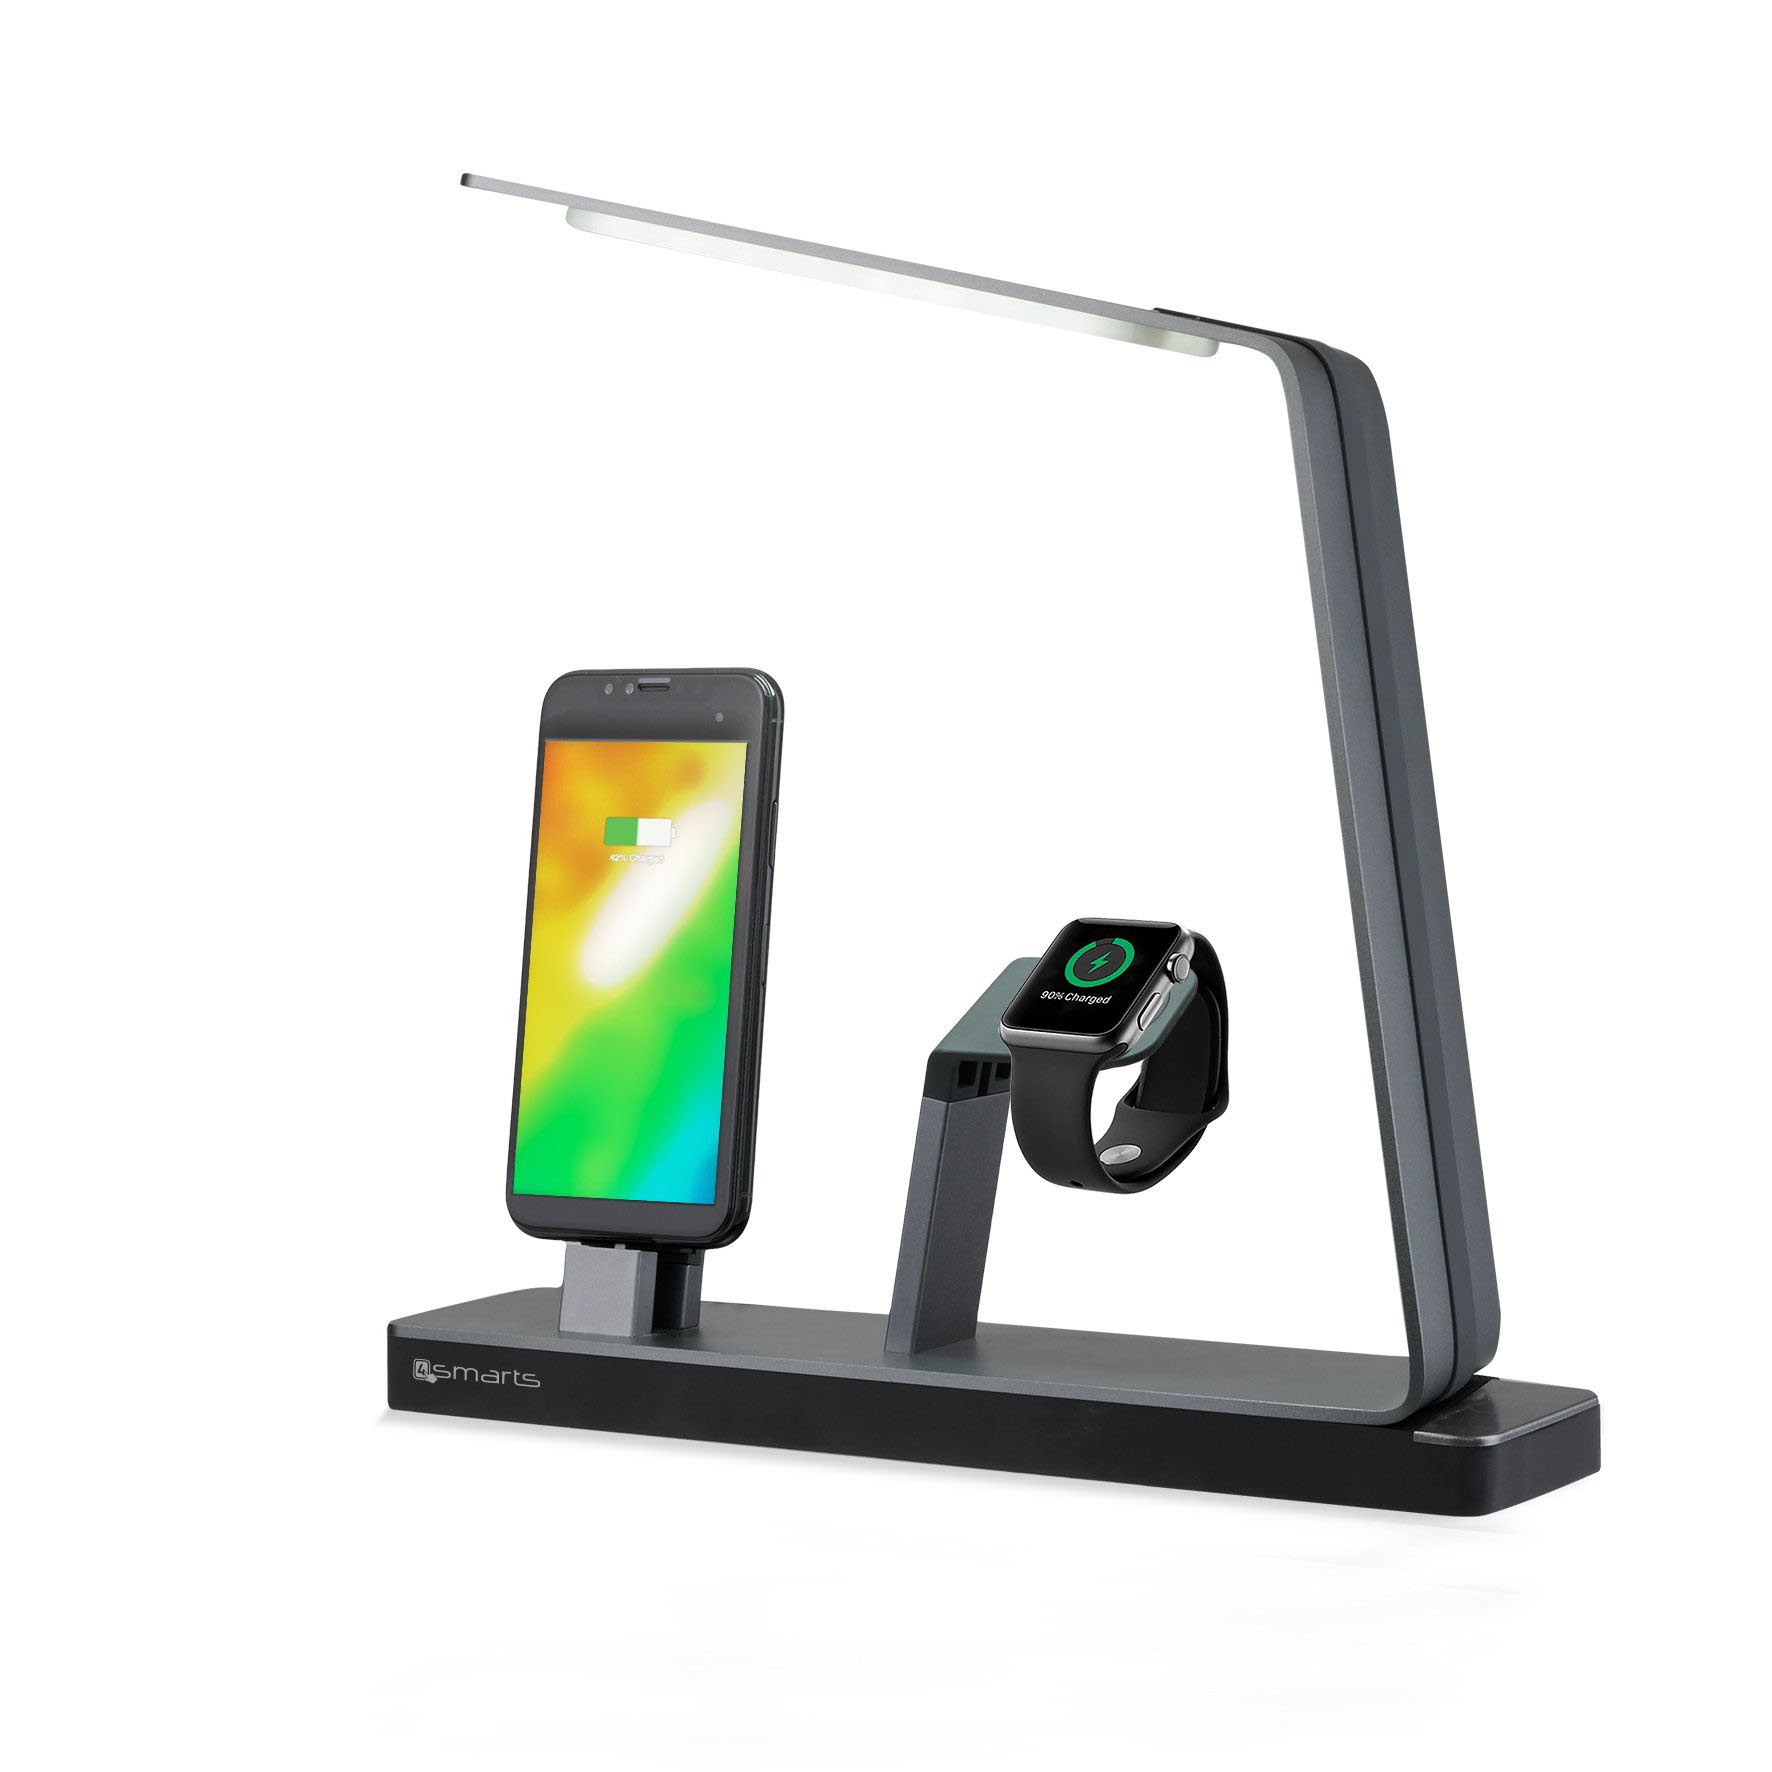 Image of   4smarts LoomiDock Charging Station w. LED Lamp For Apple Devices (w. Qi Watch Charger) Sort / Sølv